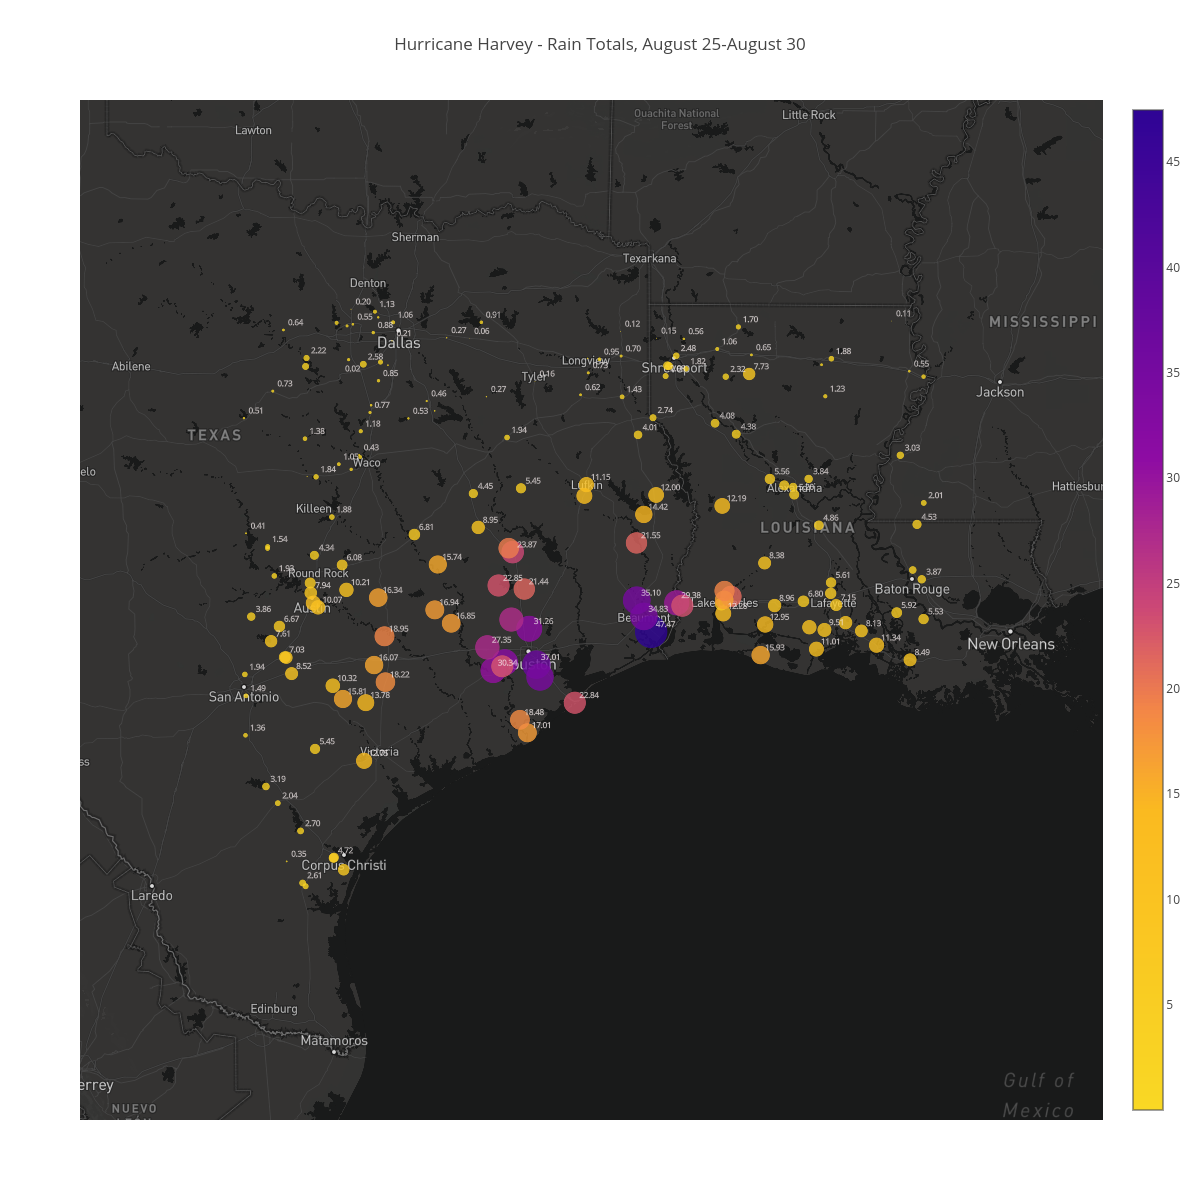 Hurricane Harvey - Rain Totals, August 25-August 30 | scattermapbox made by Bigdata153 | plotly